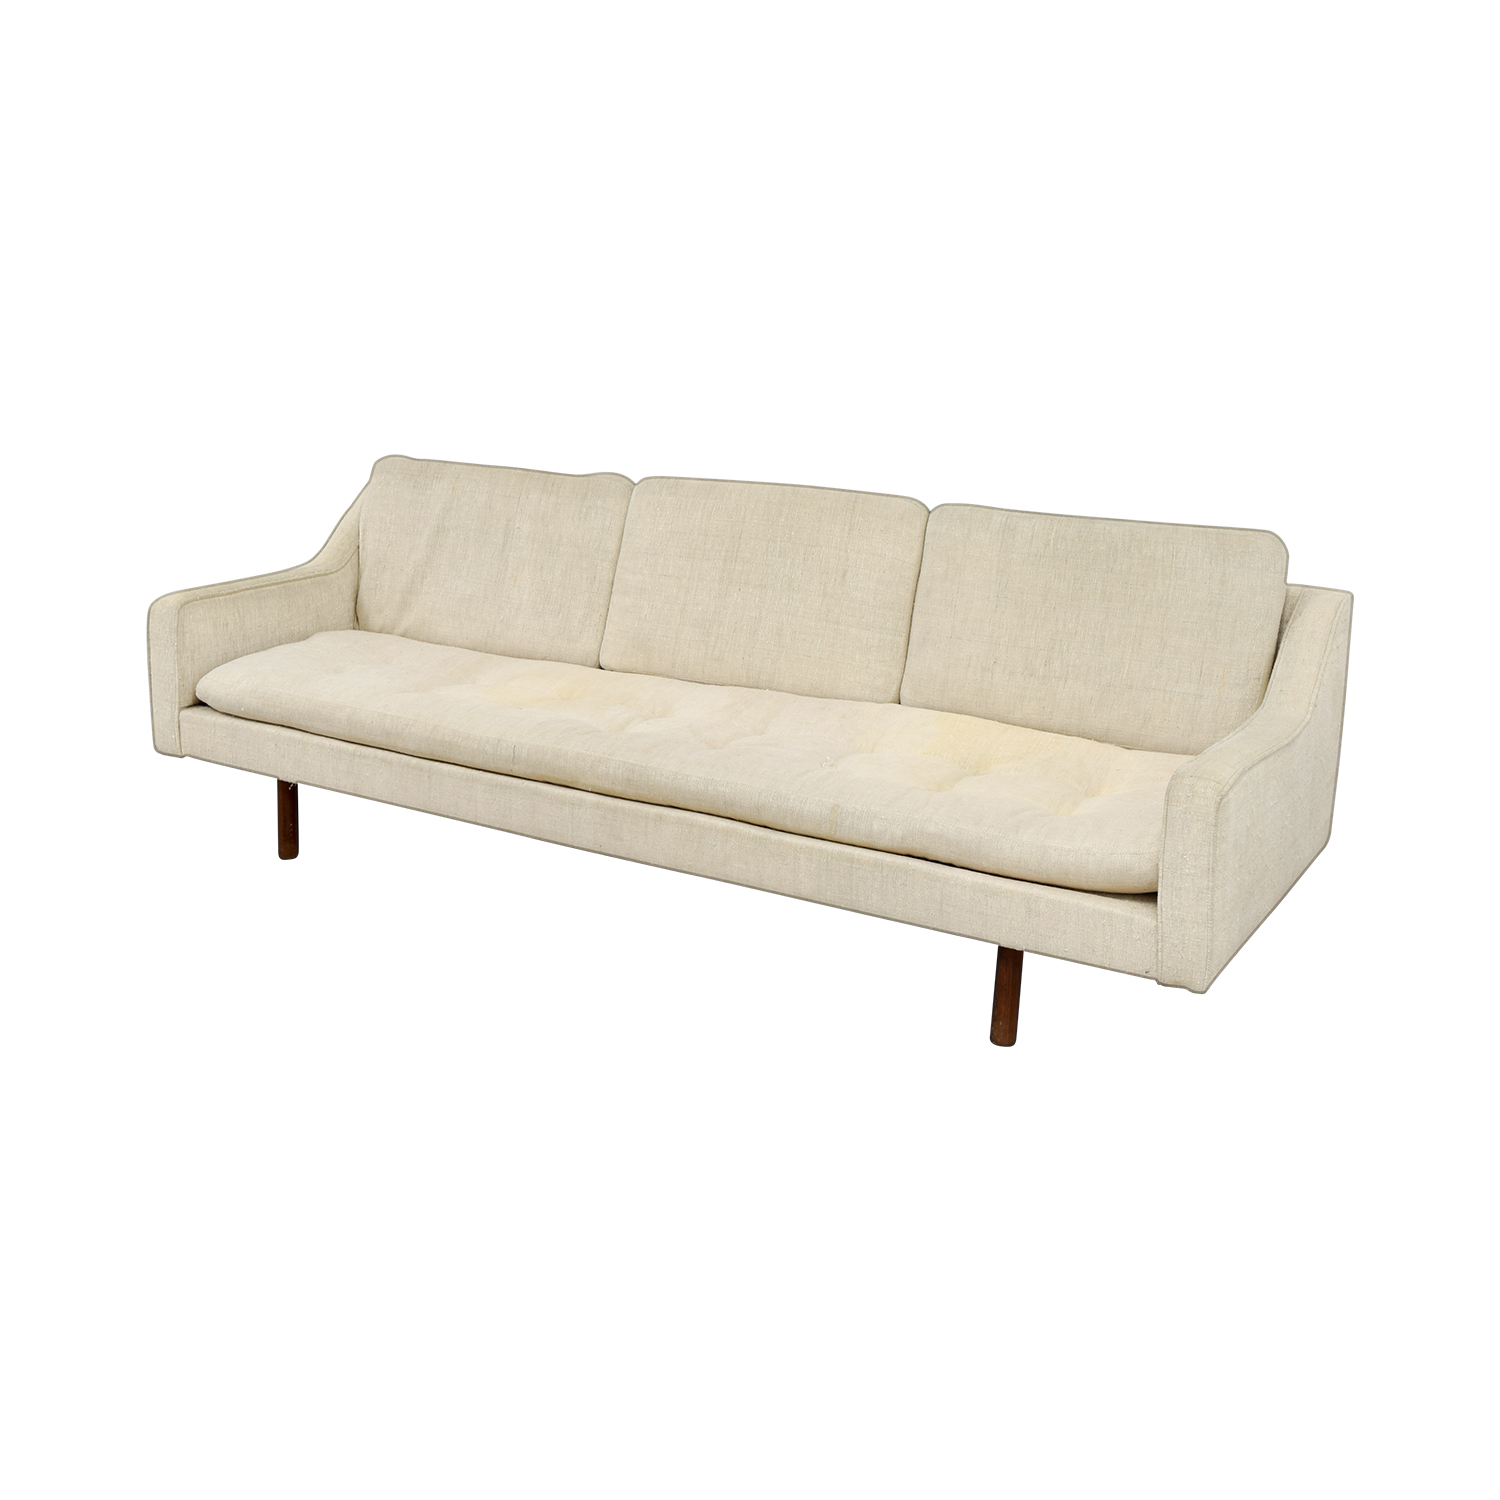 Single Cushion Loveseat Perseus Loveseat Bibbs Loveseat Sherrill Living Room One Cushion